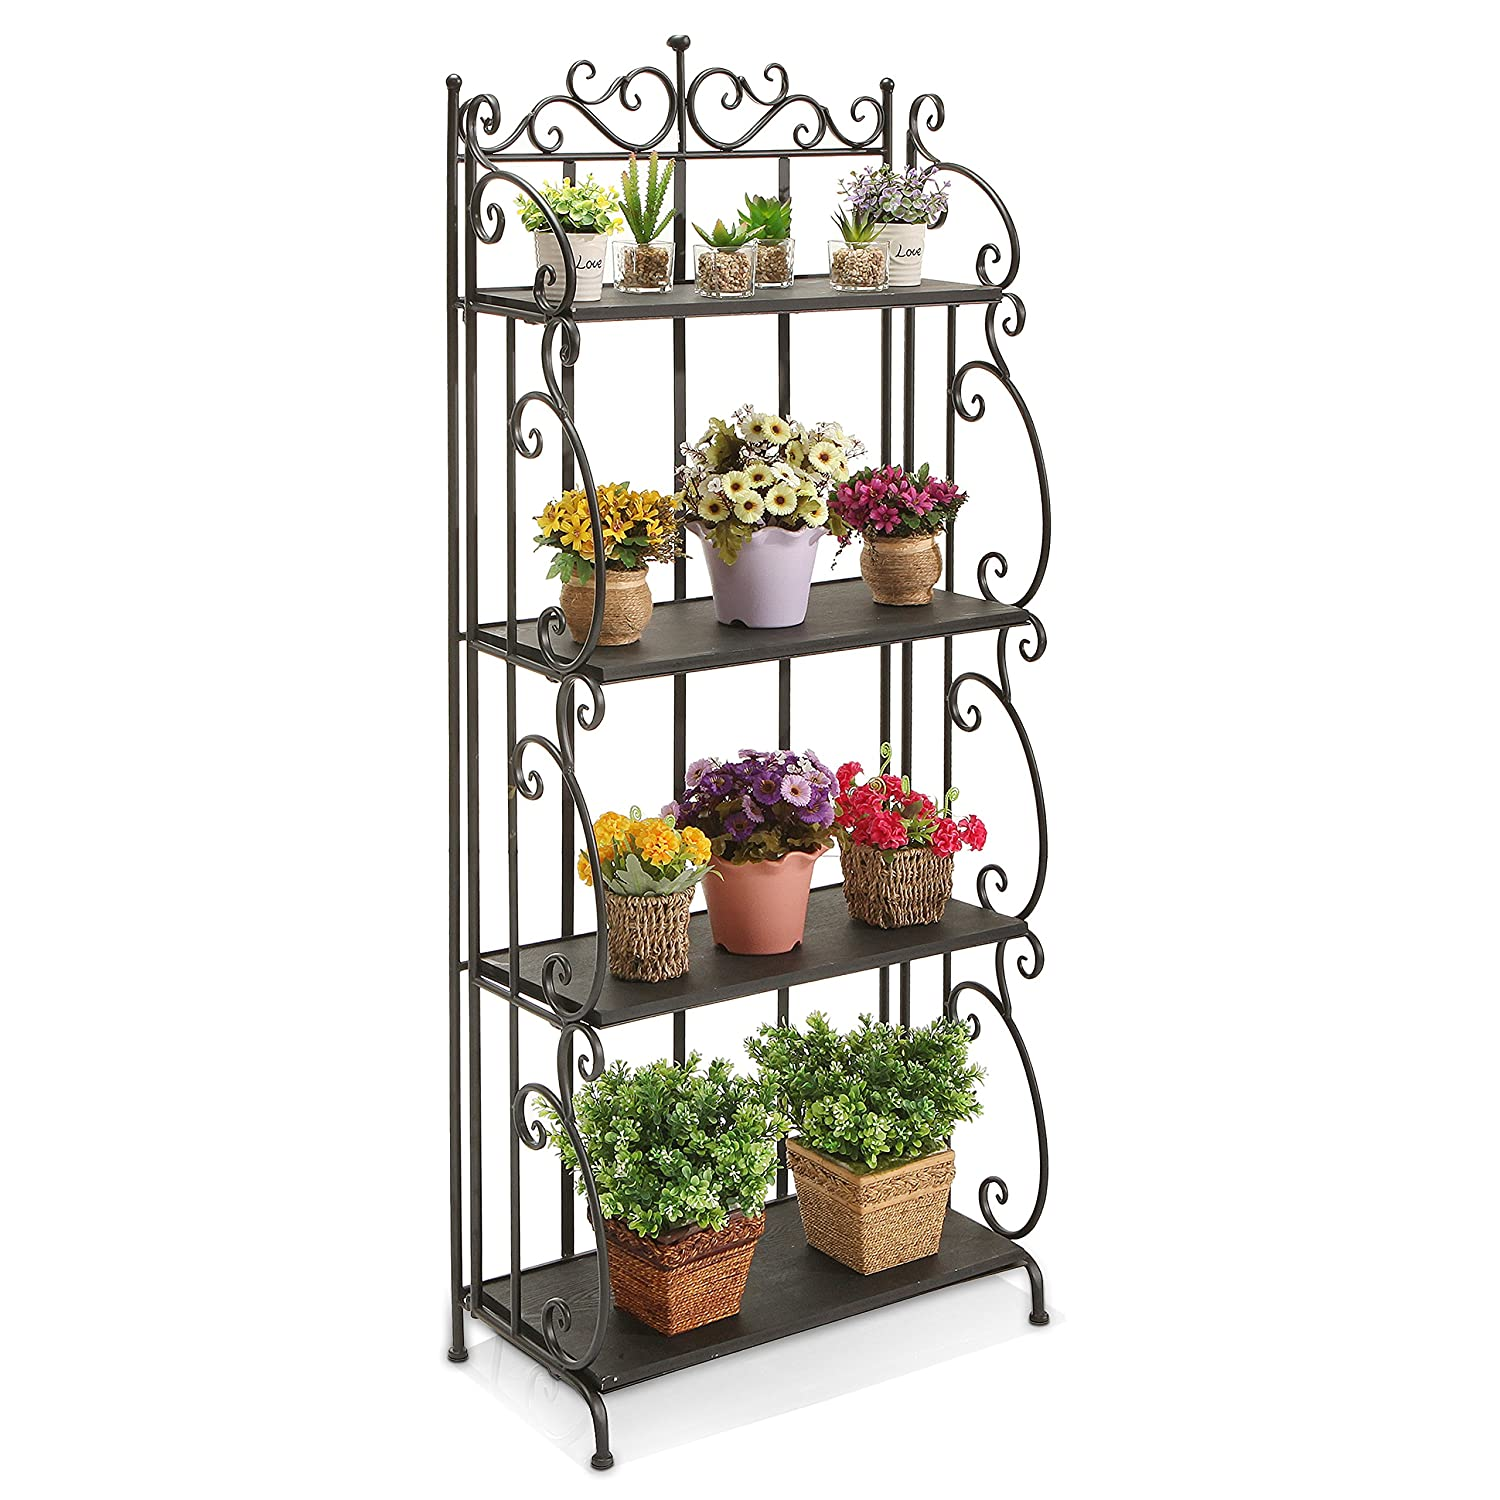 Amazon.com MyGift Victorian Scrollwork Design 57 Inch Tall Folding Black Metal Bookshelf / 4 Tier Storage Organizer Solid Wood Shelves Rack Home u0026 Kitchen  sc 1 st  Amazon.com & Amazon.com: MyGift Victorian Scrollwork Design 57 Inch Tall Folding ...